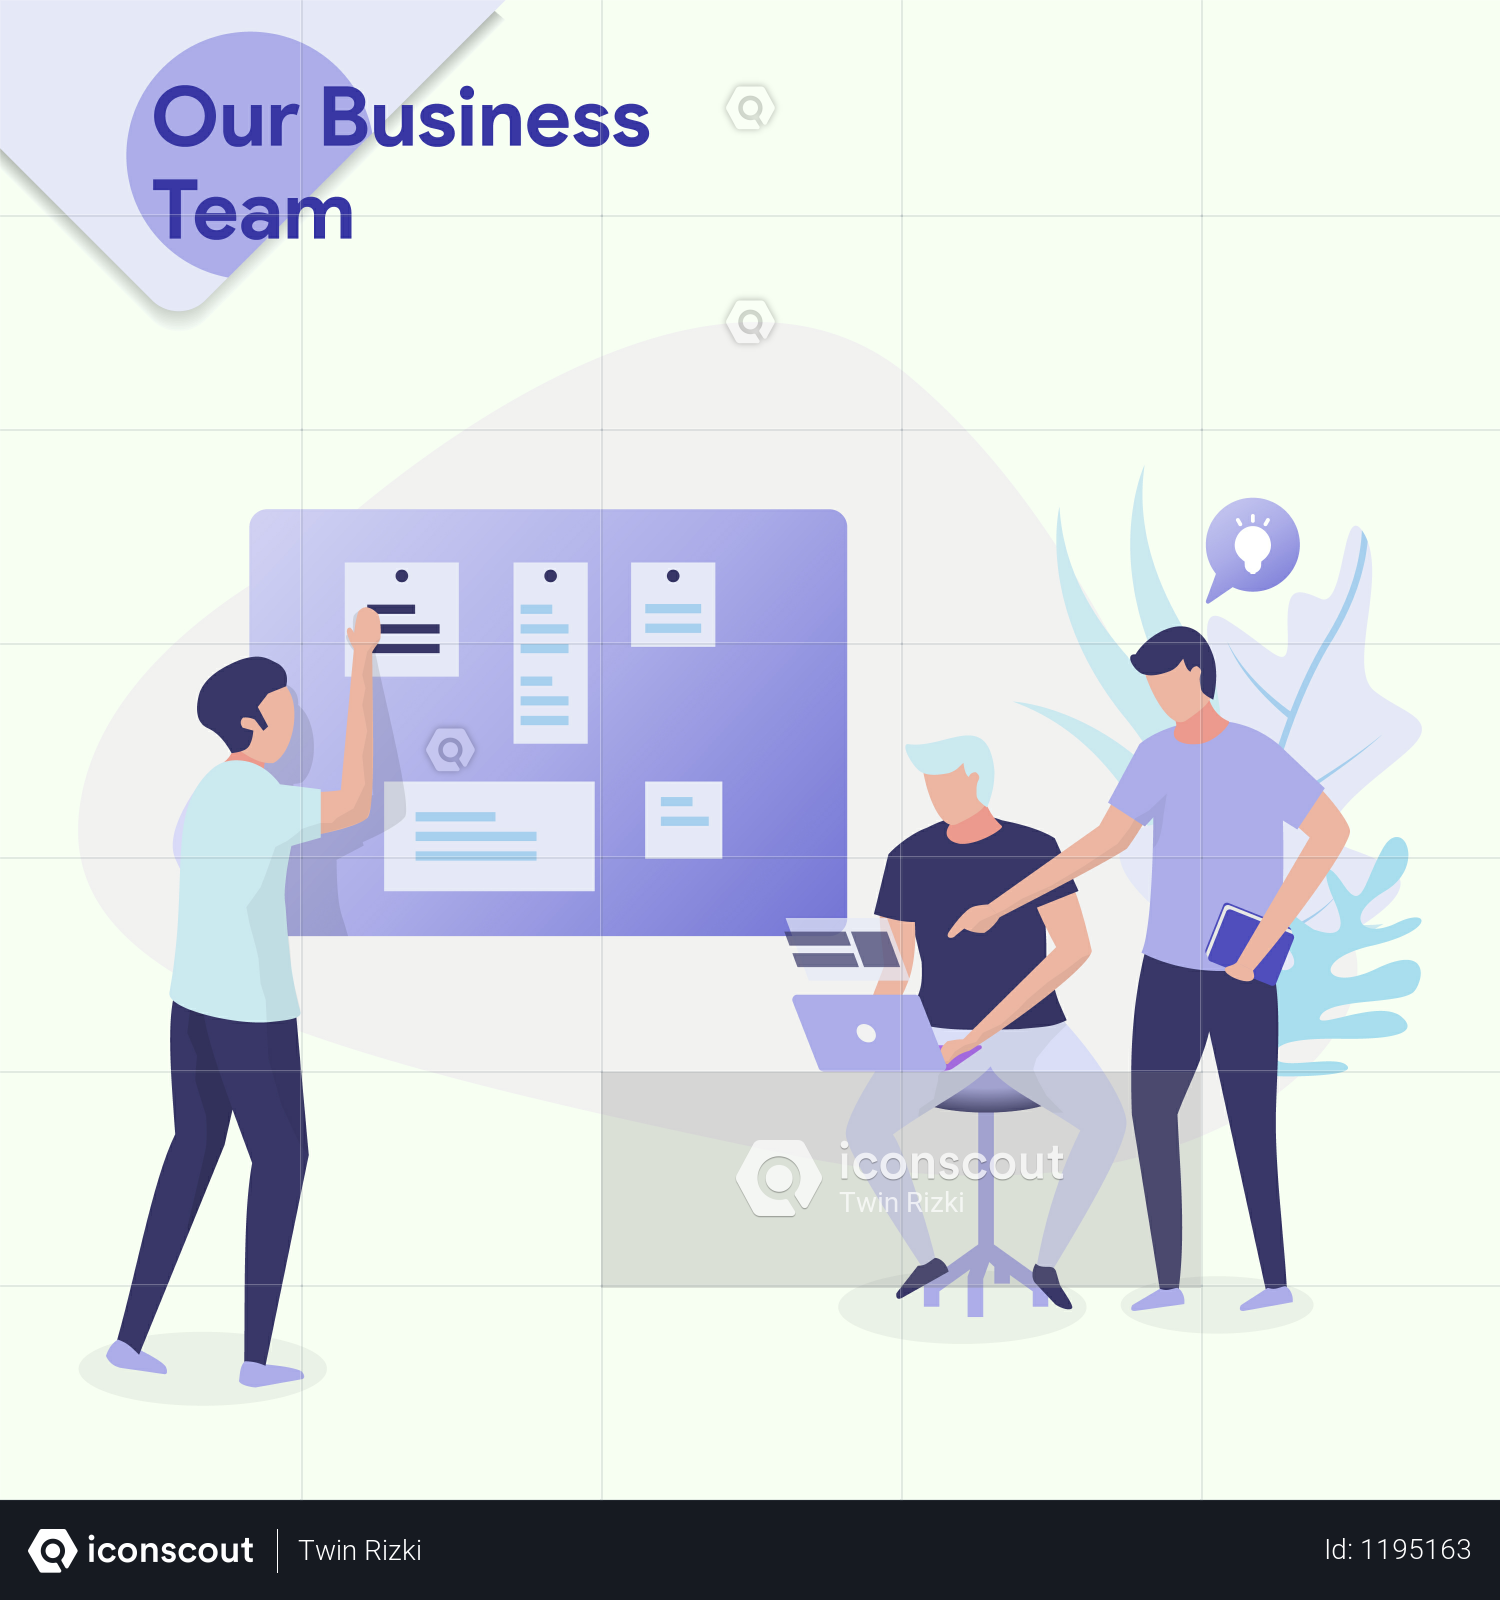 Our Business Team Illustration